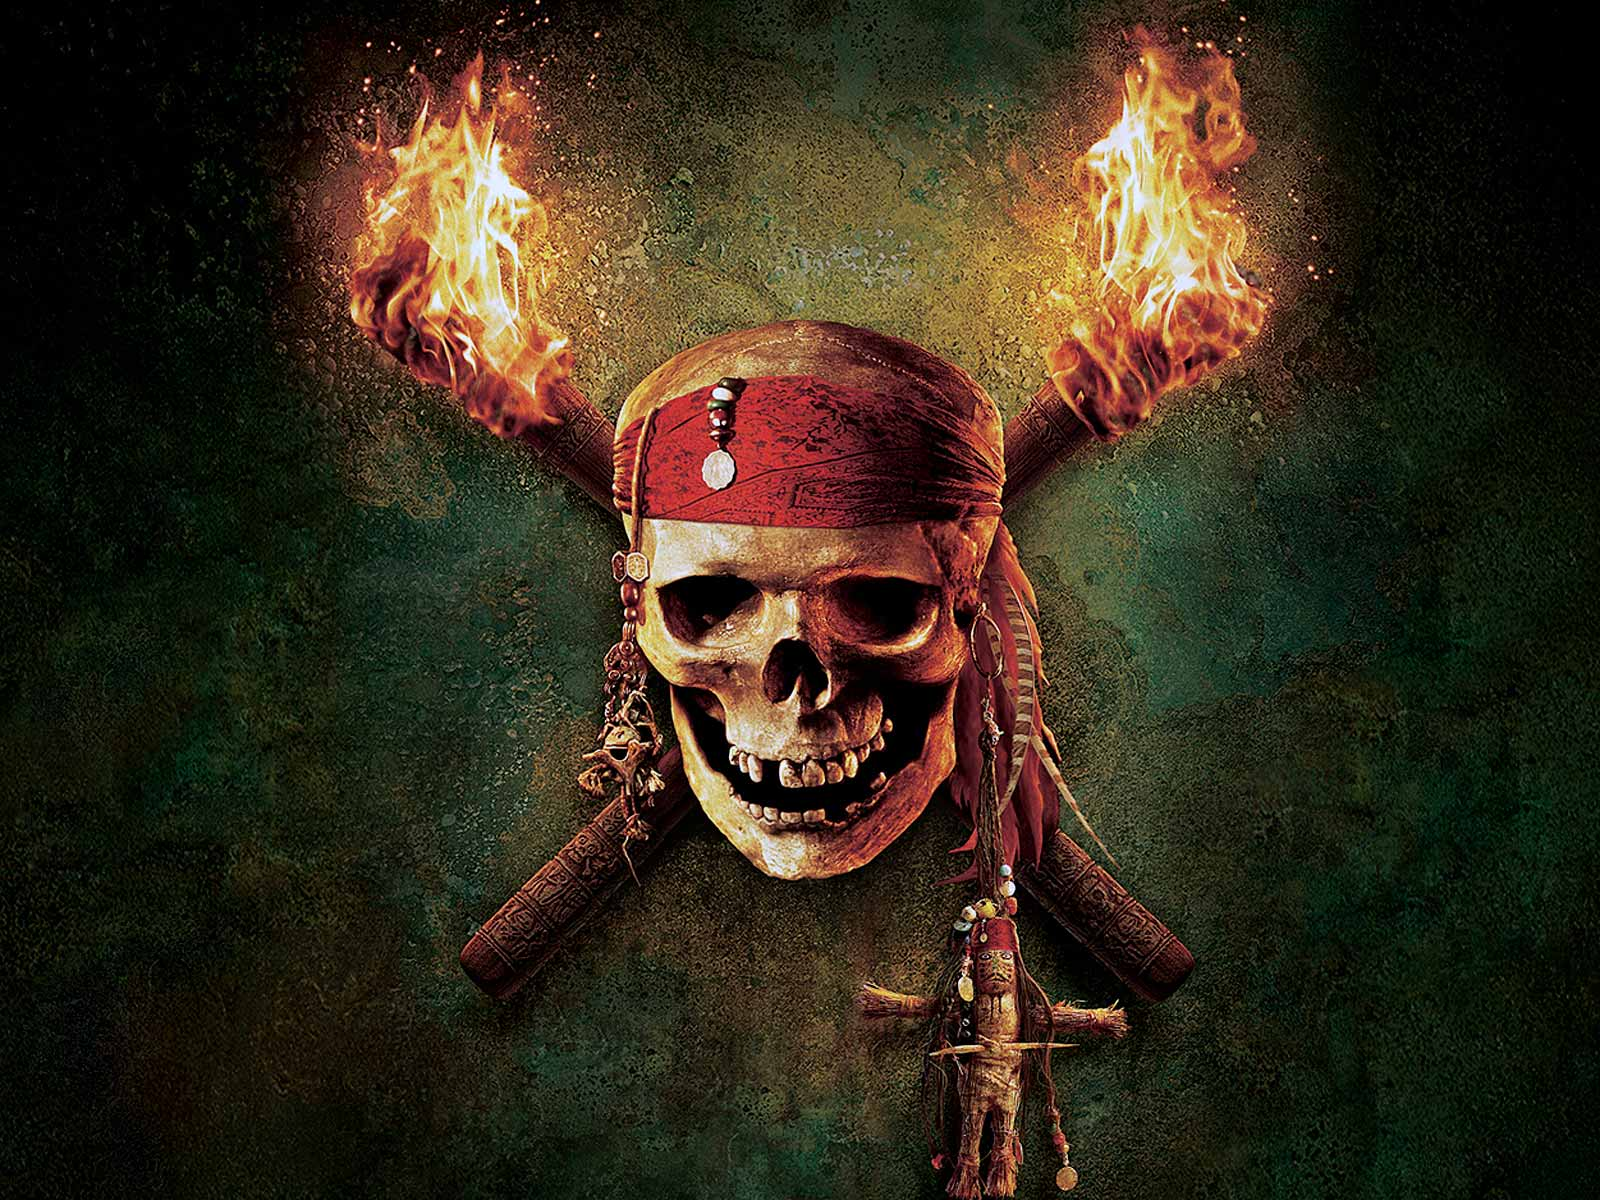 Pirates Of The Caribbean Wallpaper Images #8680 Wallpaper | High ...